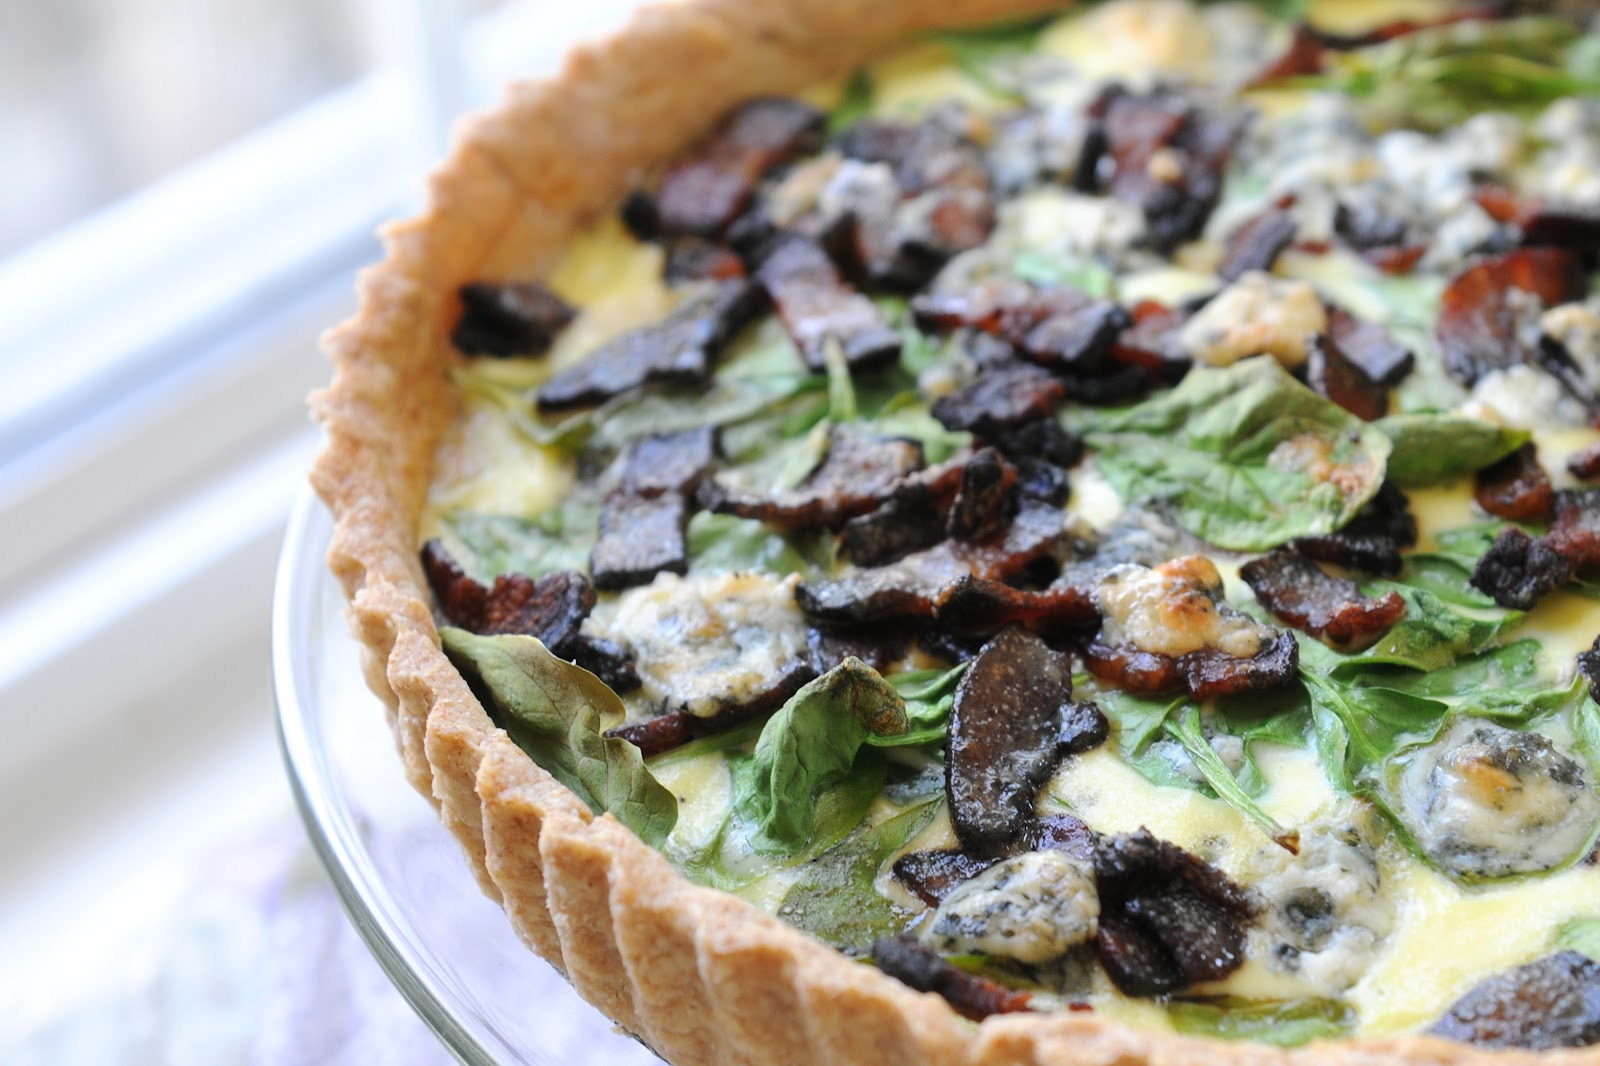 ... Gourmet: 134. Spinach, Blue Cheese and Bacon Quiche with a Spelt Crust